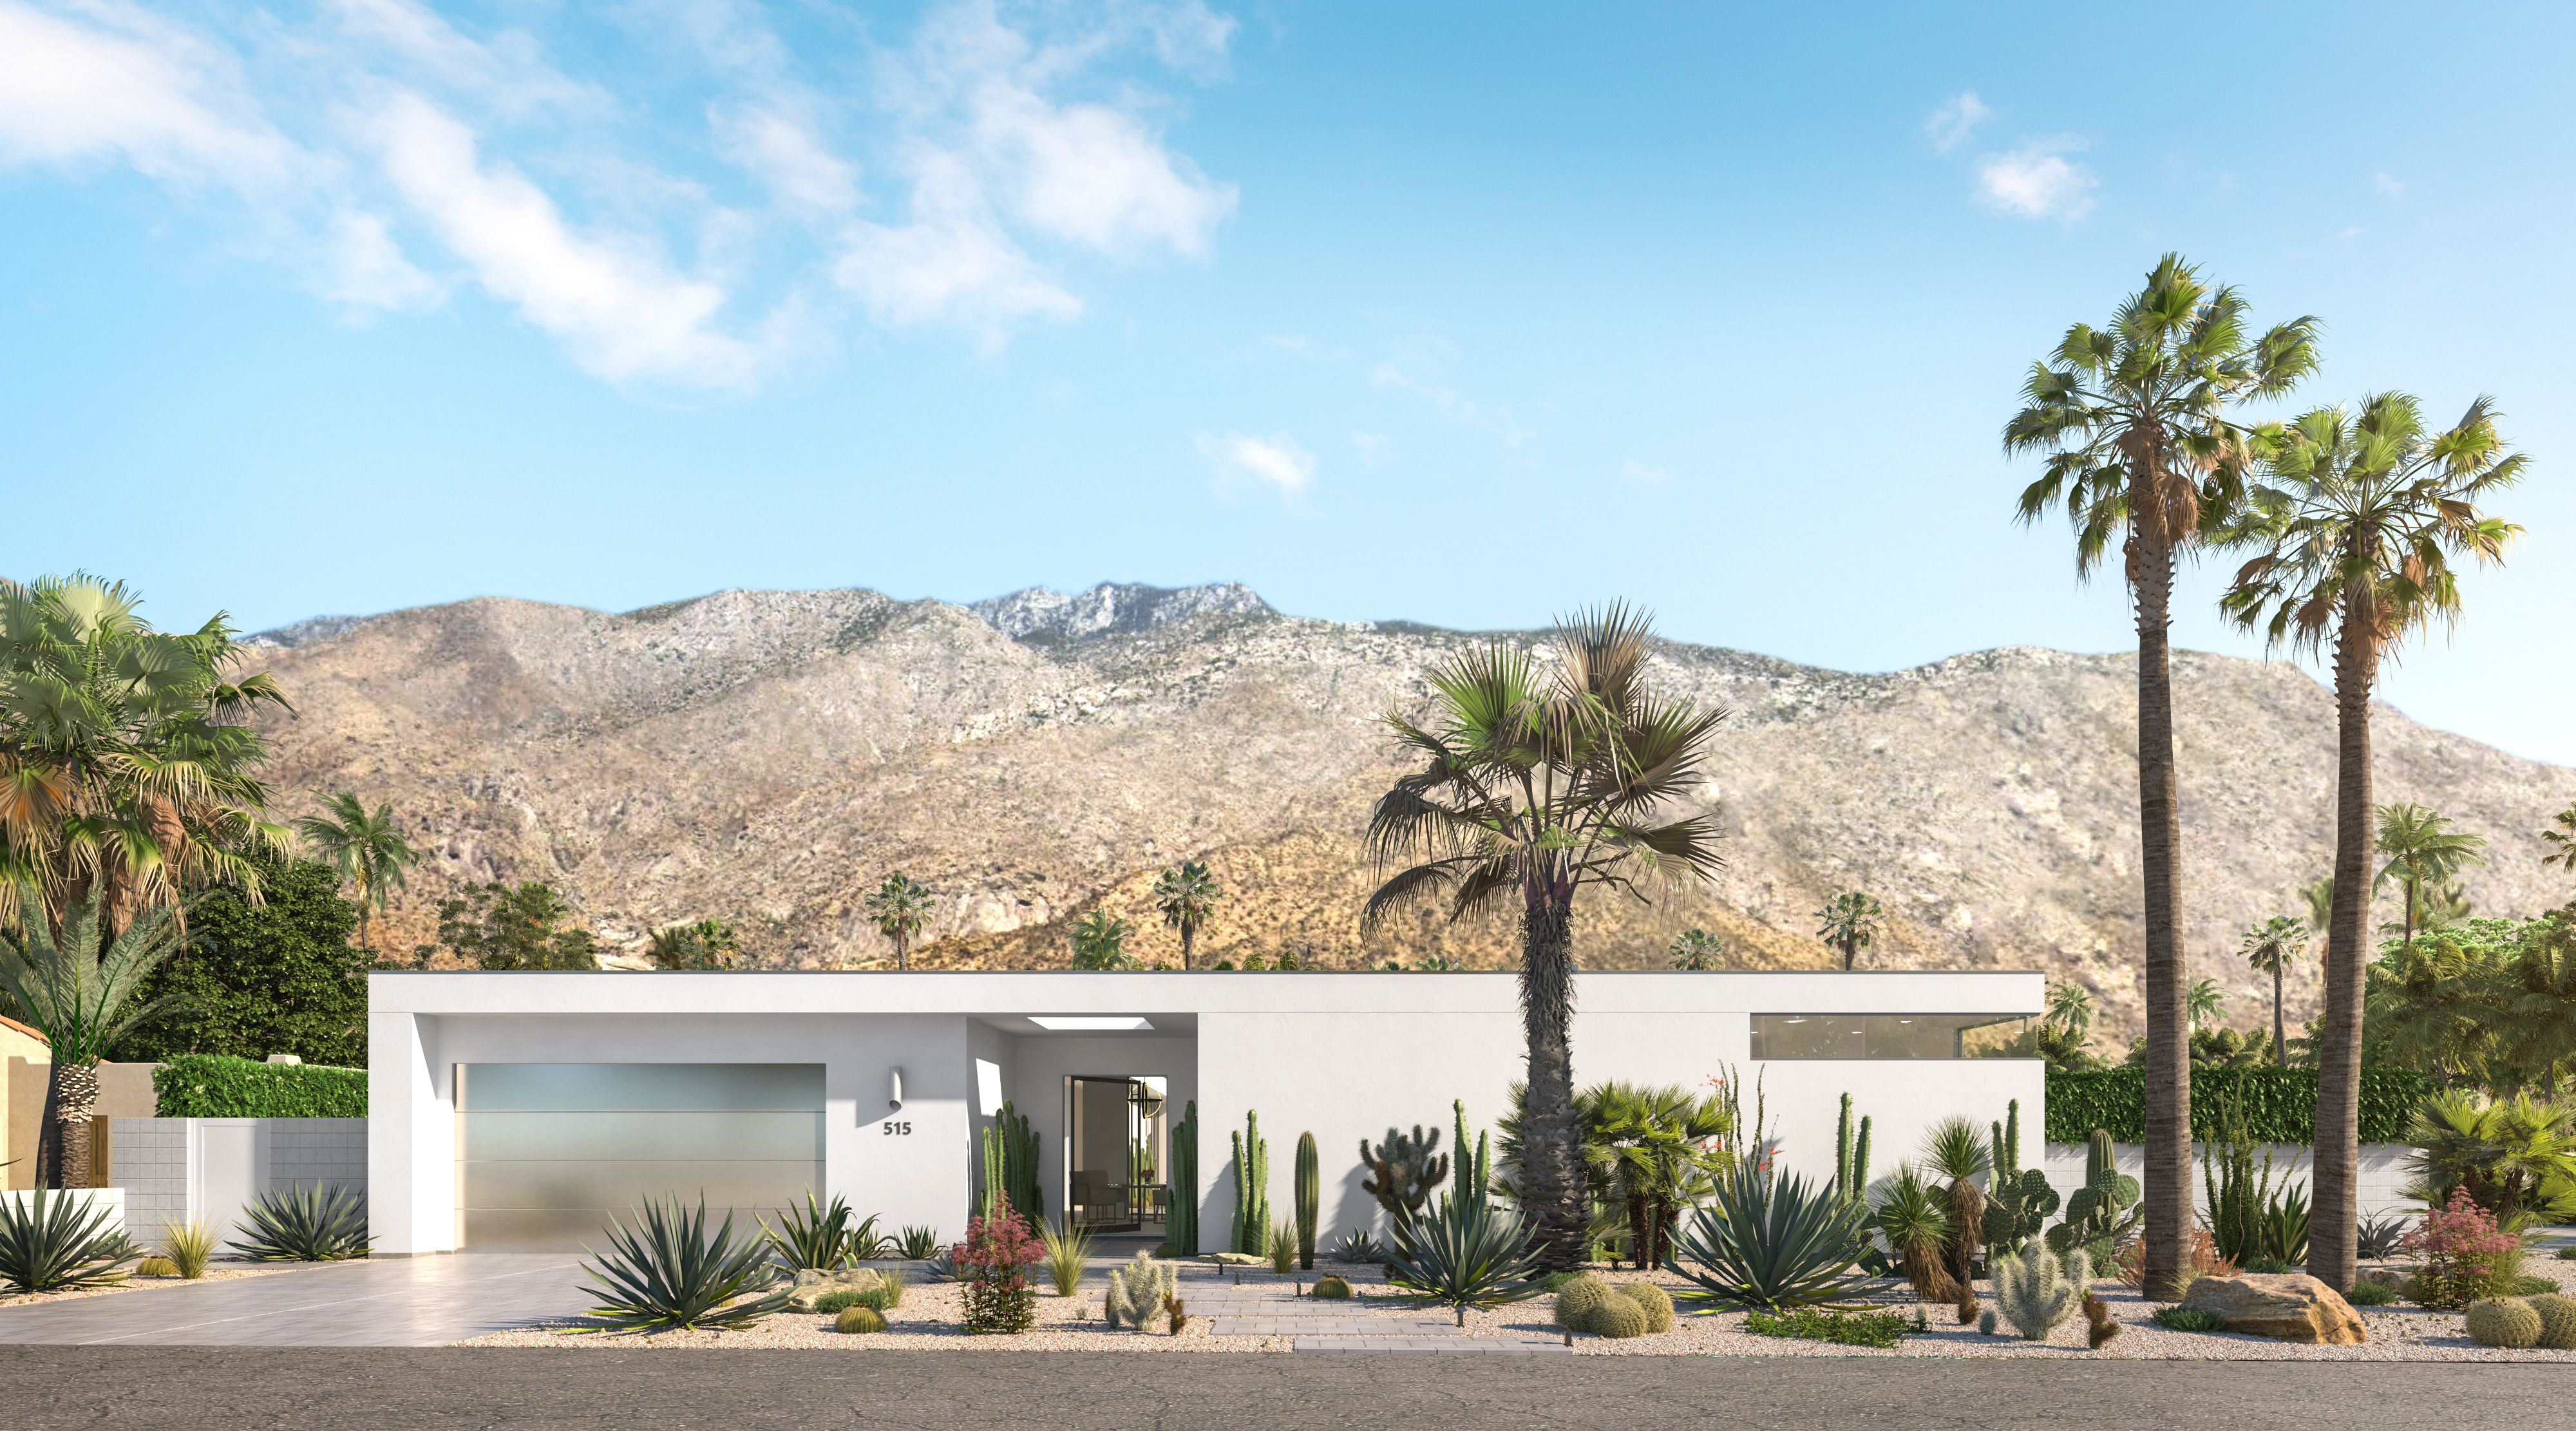 Modern Architecture Tours Of Palm Springs Personal Guided Tours Of Mid Cen Palm Springs Architecture Palm Springs Mid Century Modern Mid Century Modern House